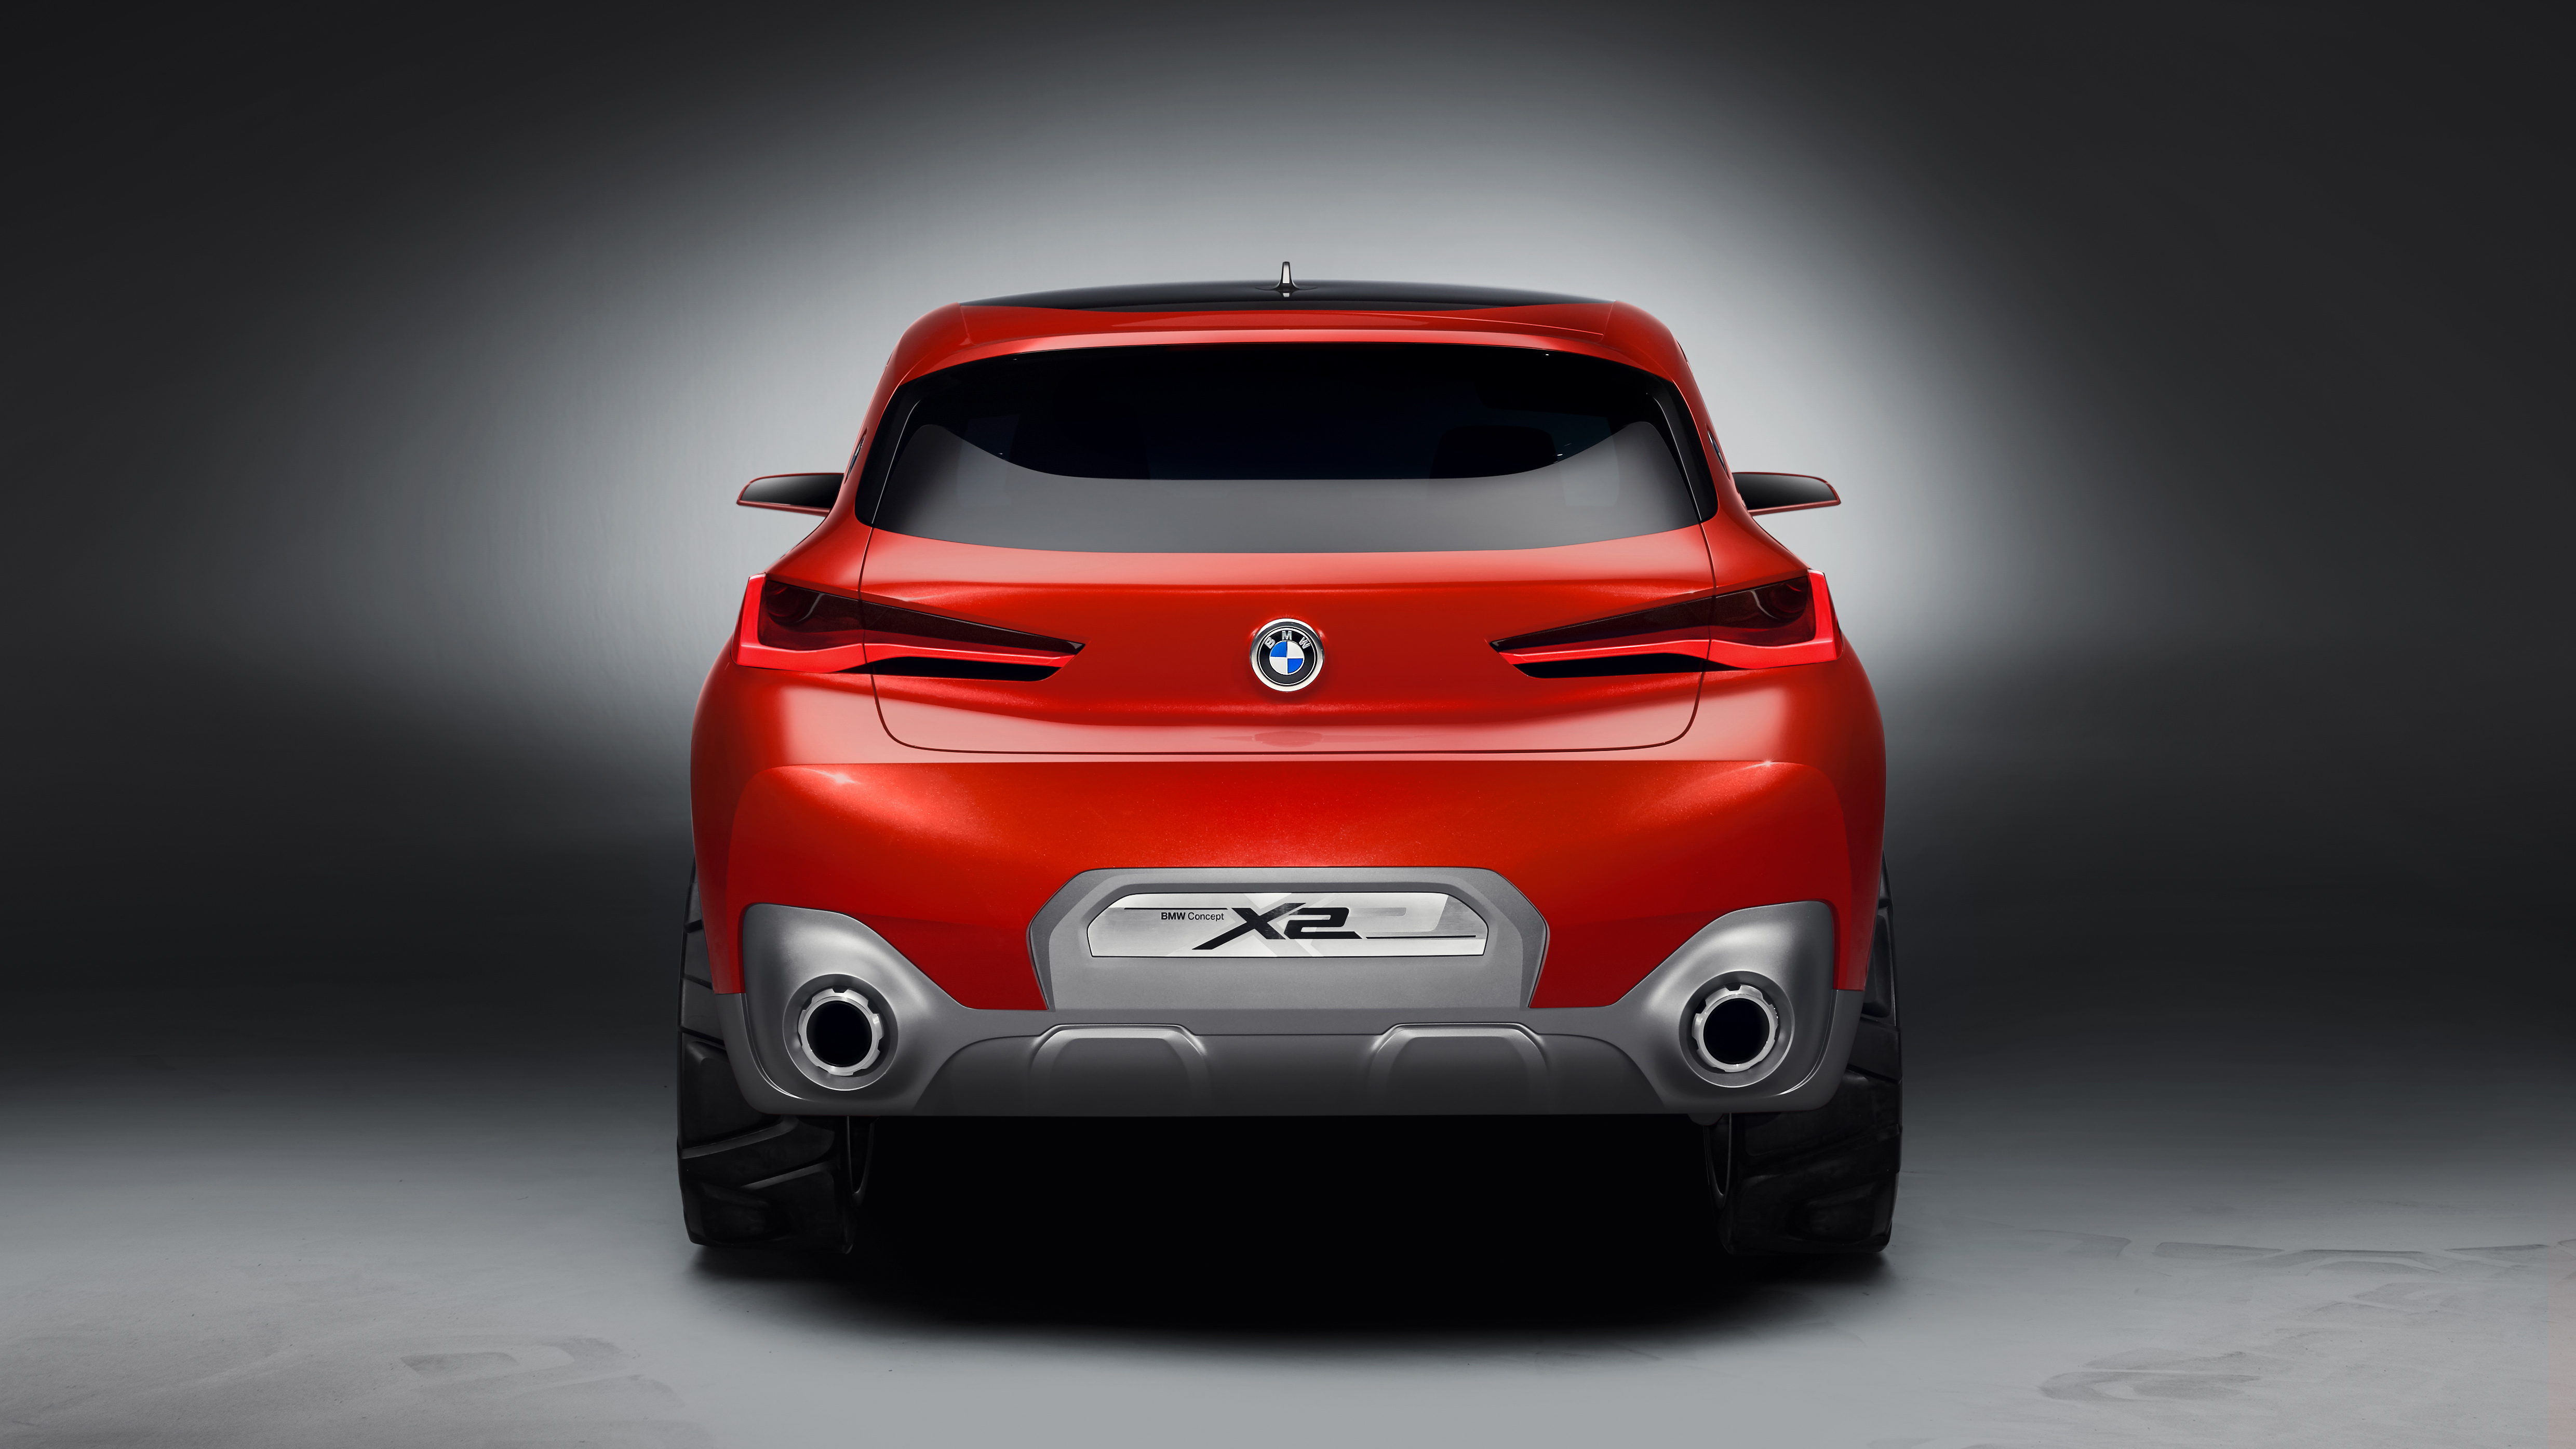 2018 Bmw X2 Concept Car Rear